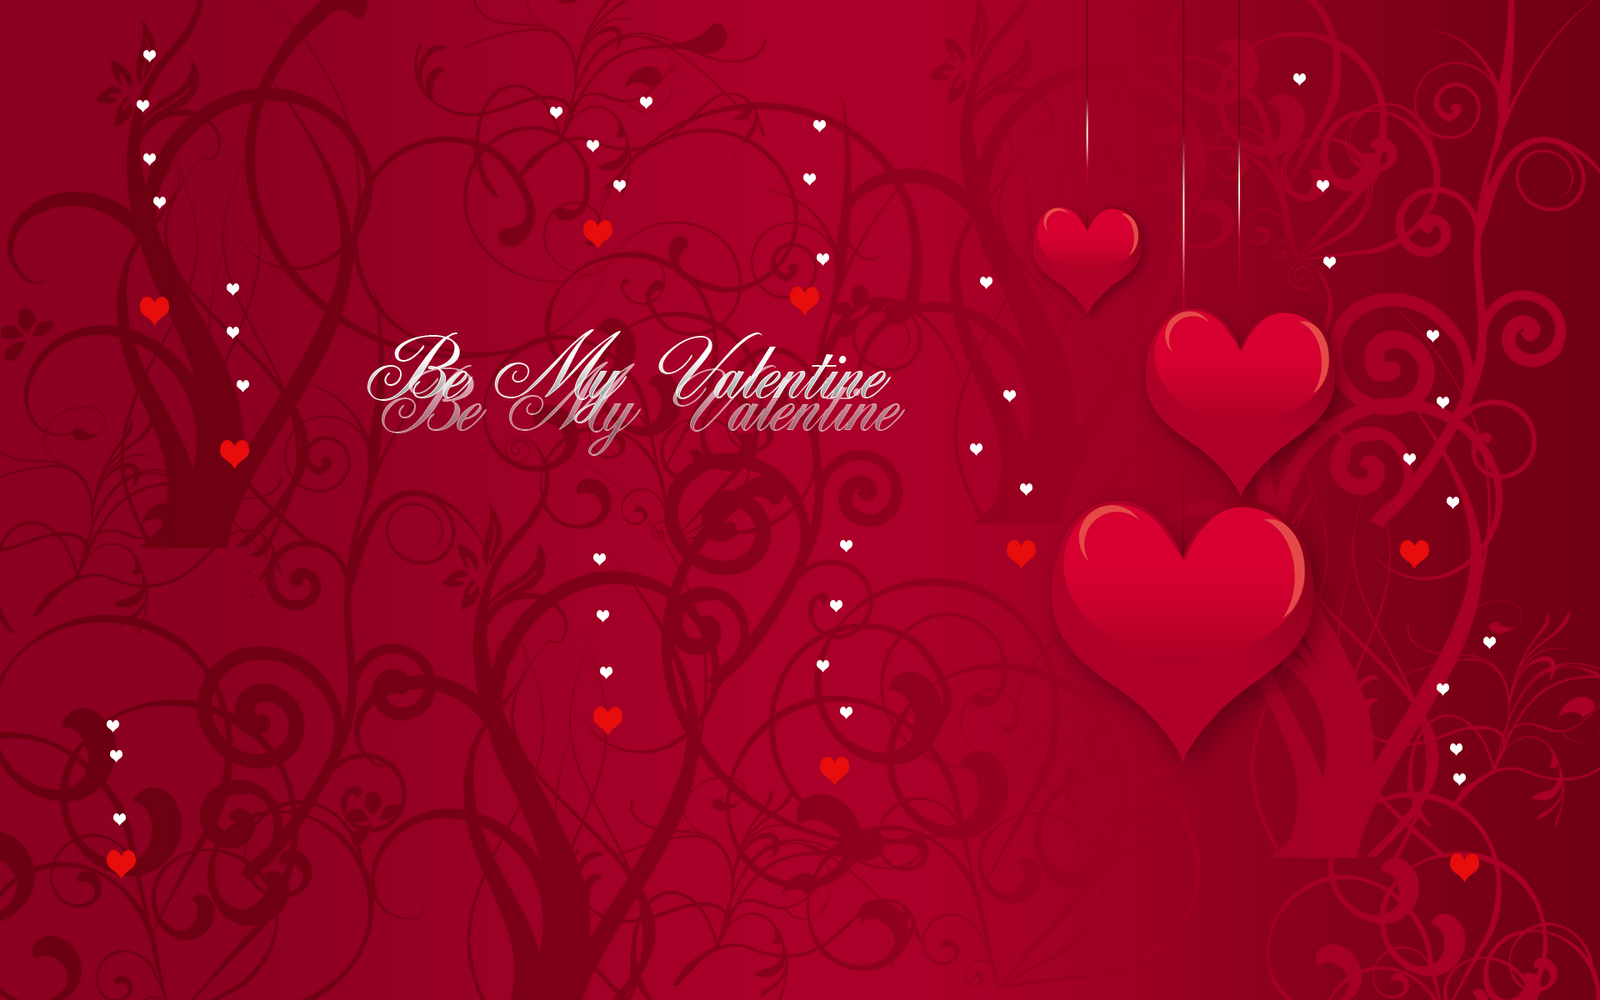 Valentines Day Love Hd Wallpapers Download Wallpapers In Hd X